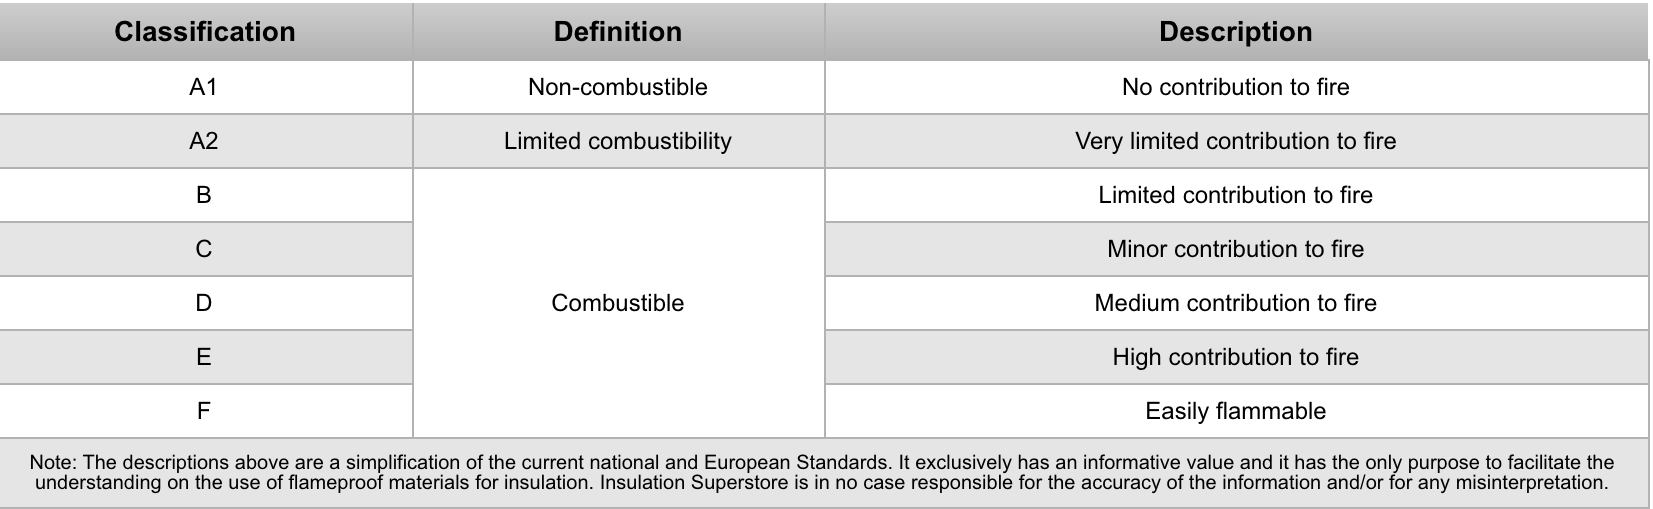 Euroclass Classification Guide